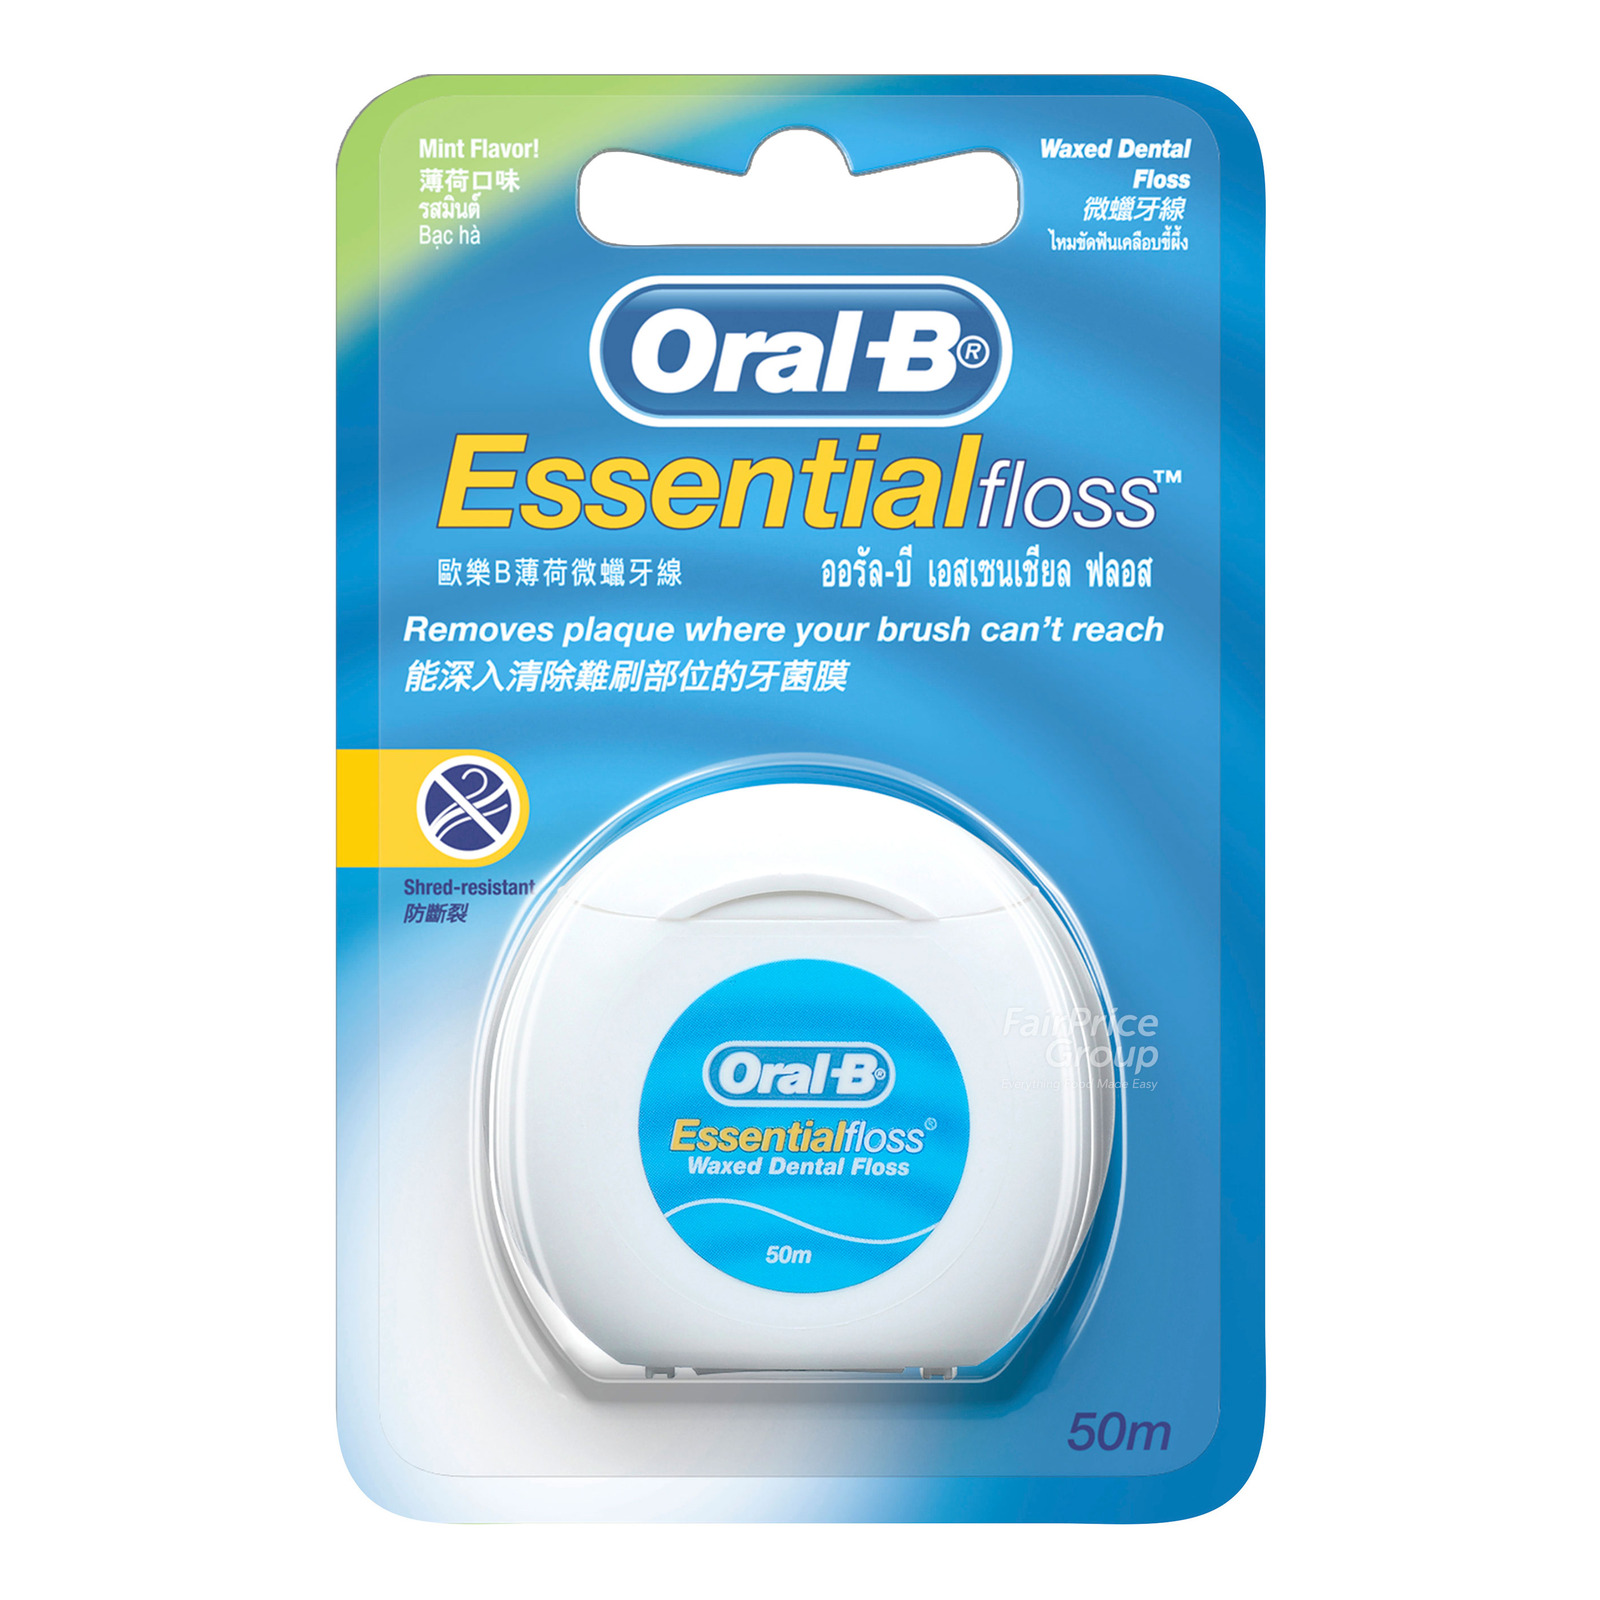 Oral-B Essential Floss With New Improved Dispenser, 50m